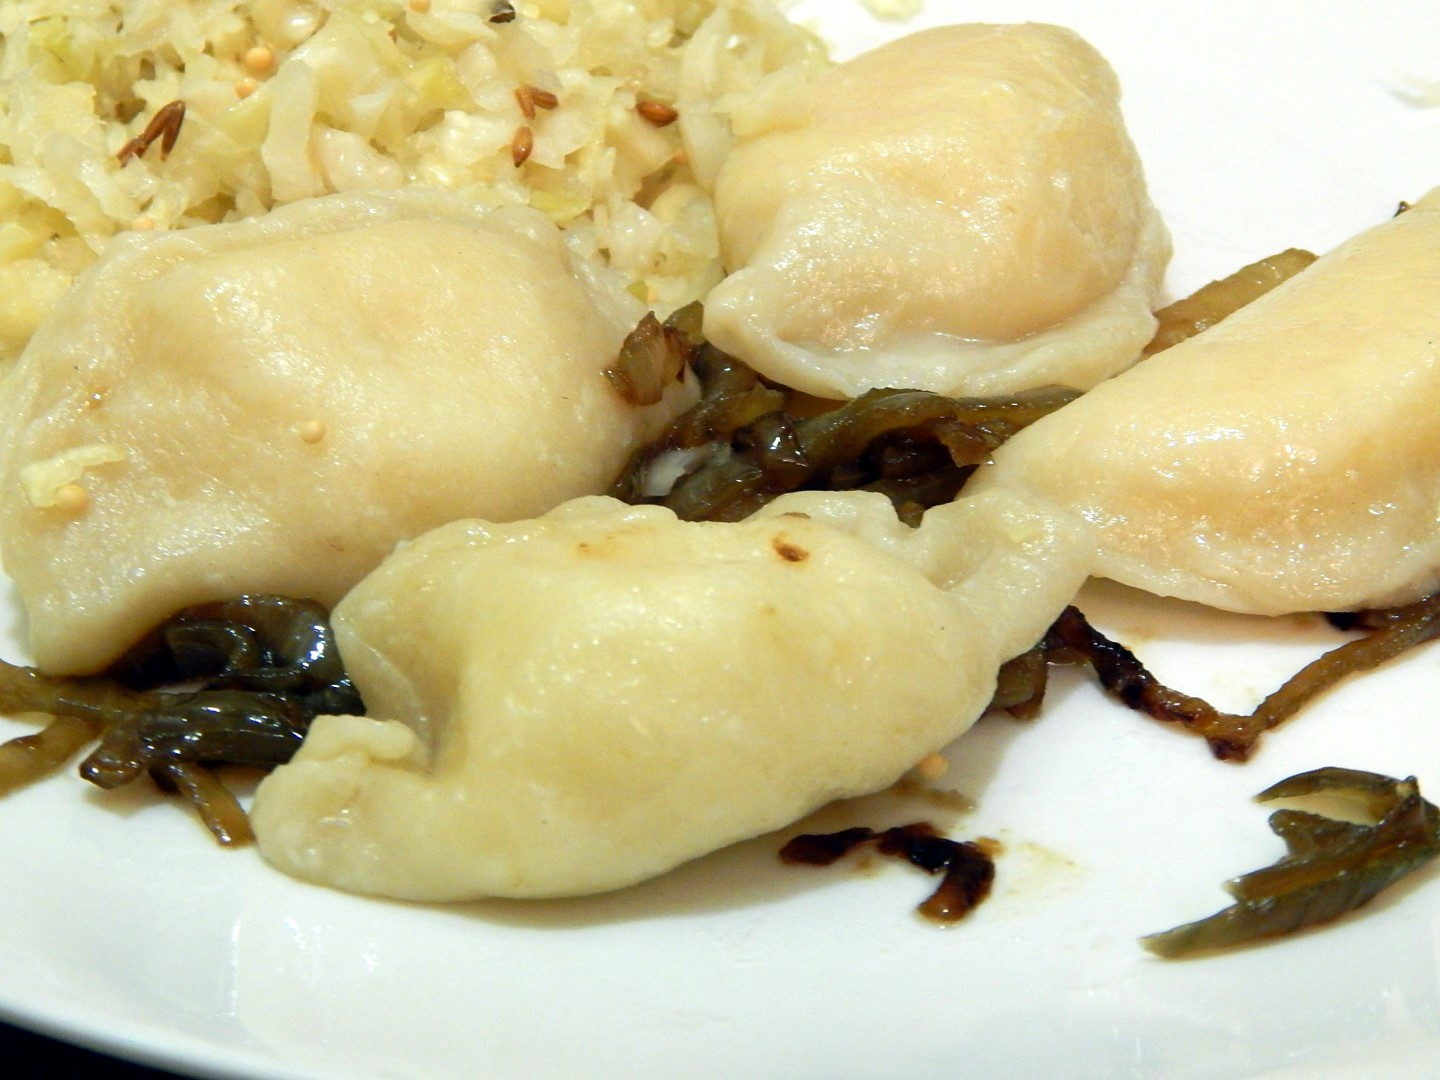 Plate of Homemade Pierogies and sauerkraut